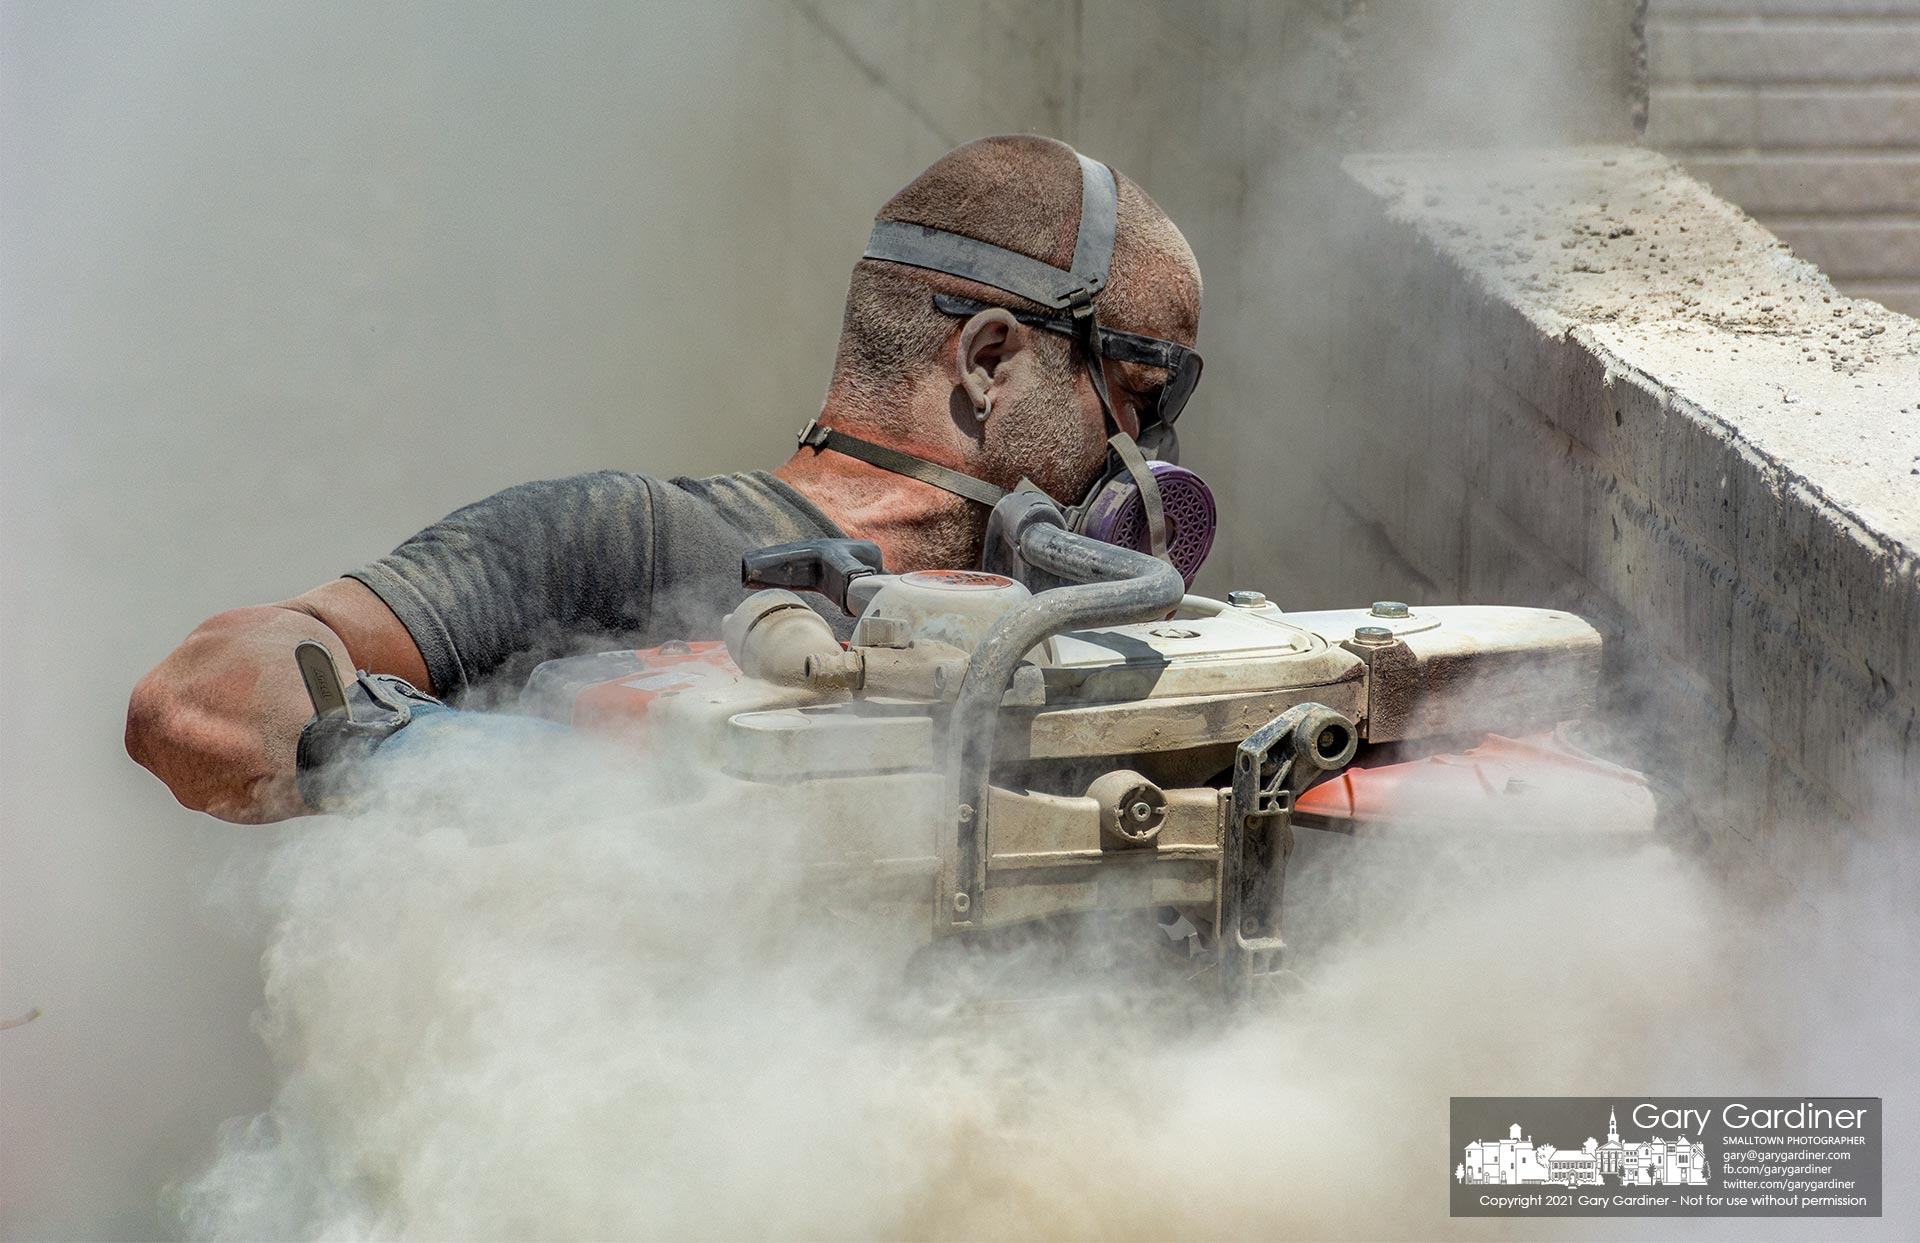 A contractor works through a cloud of dust thrown from the concrete wall he's cutting on a newly poured wall at a home under construction on East Walnut St. My Final Photo for June 29, 2021.